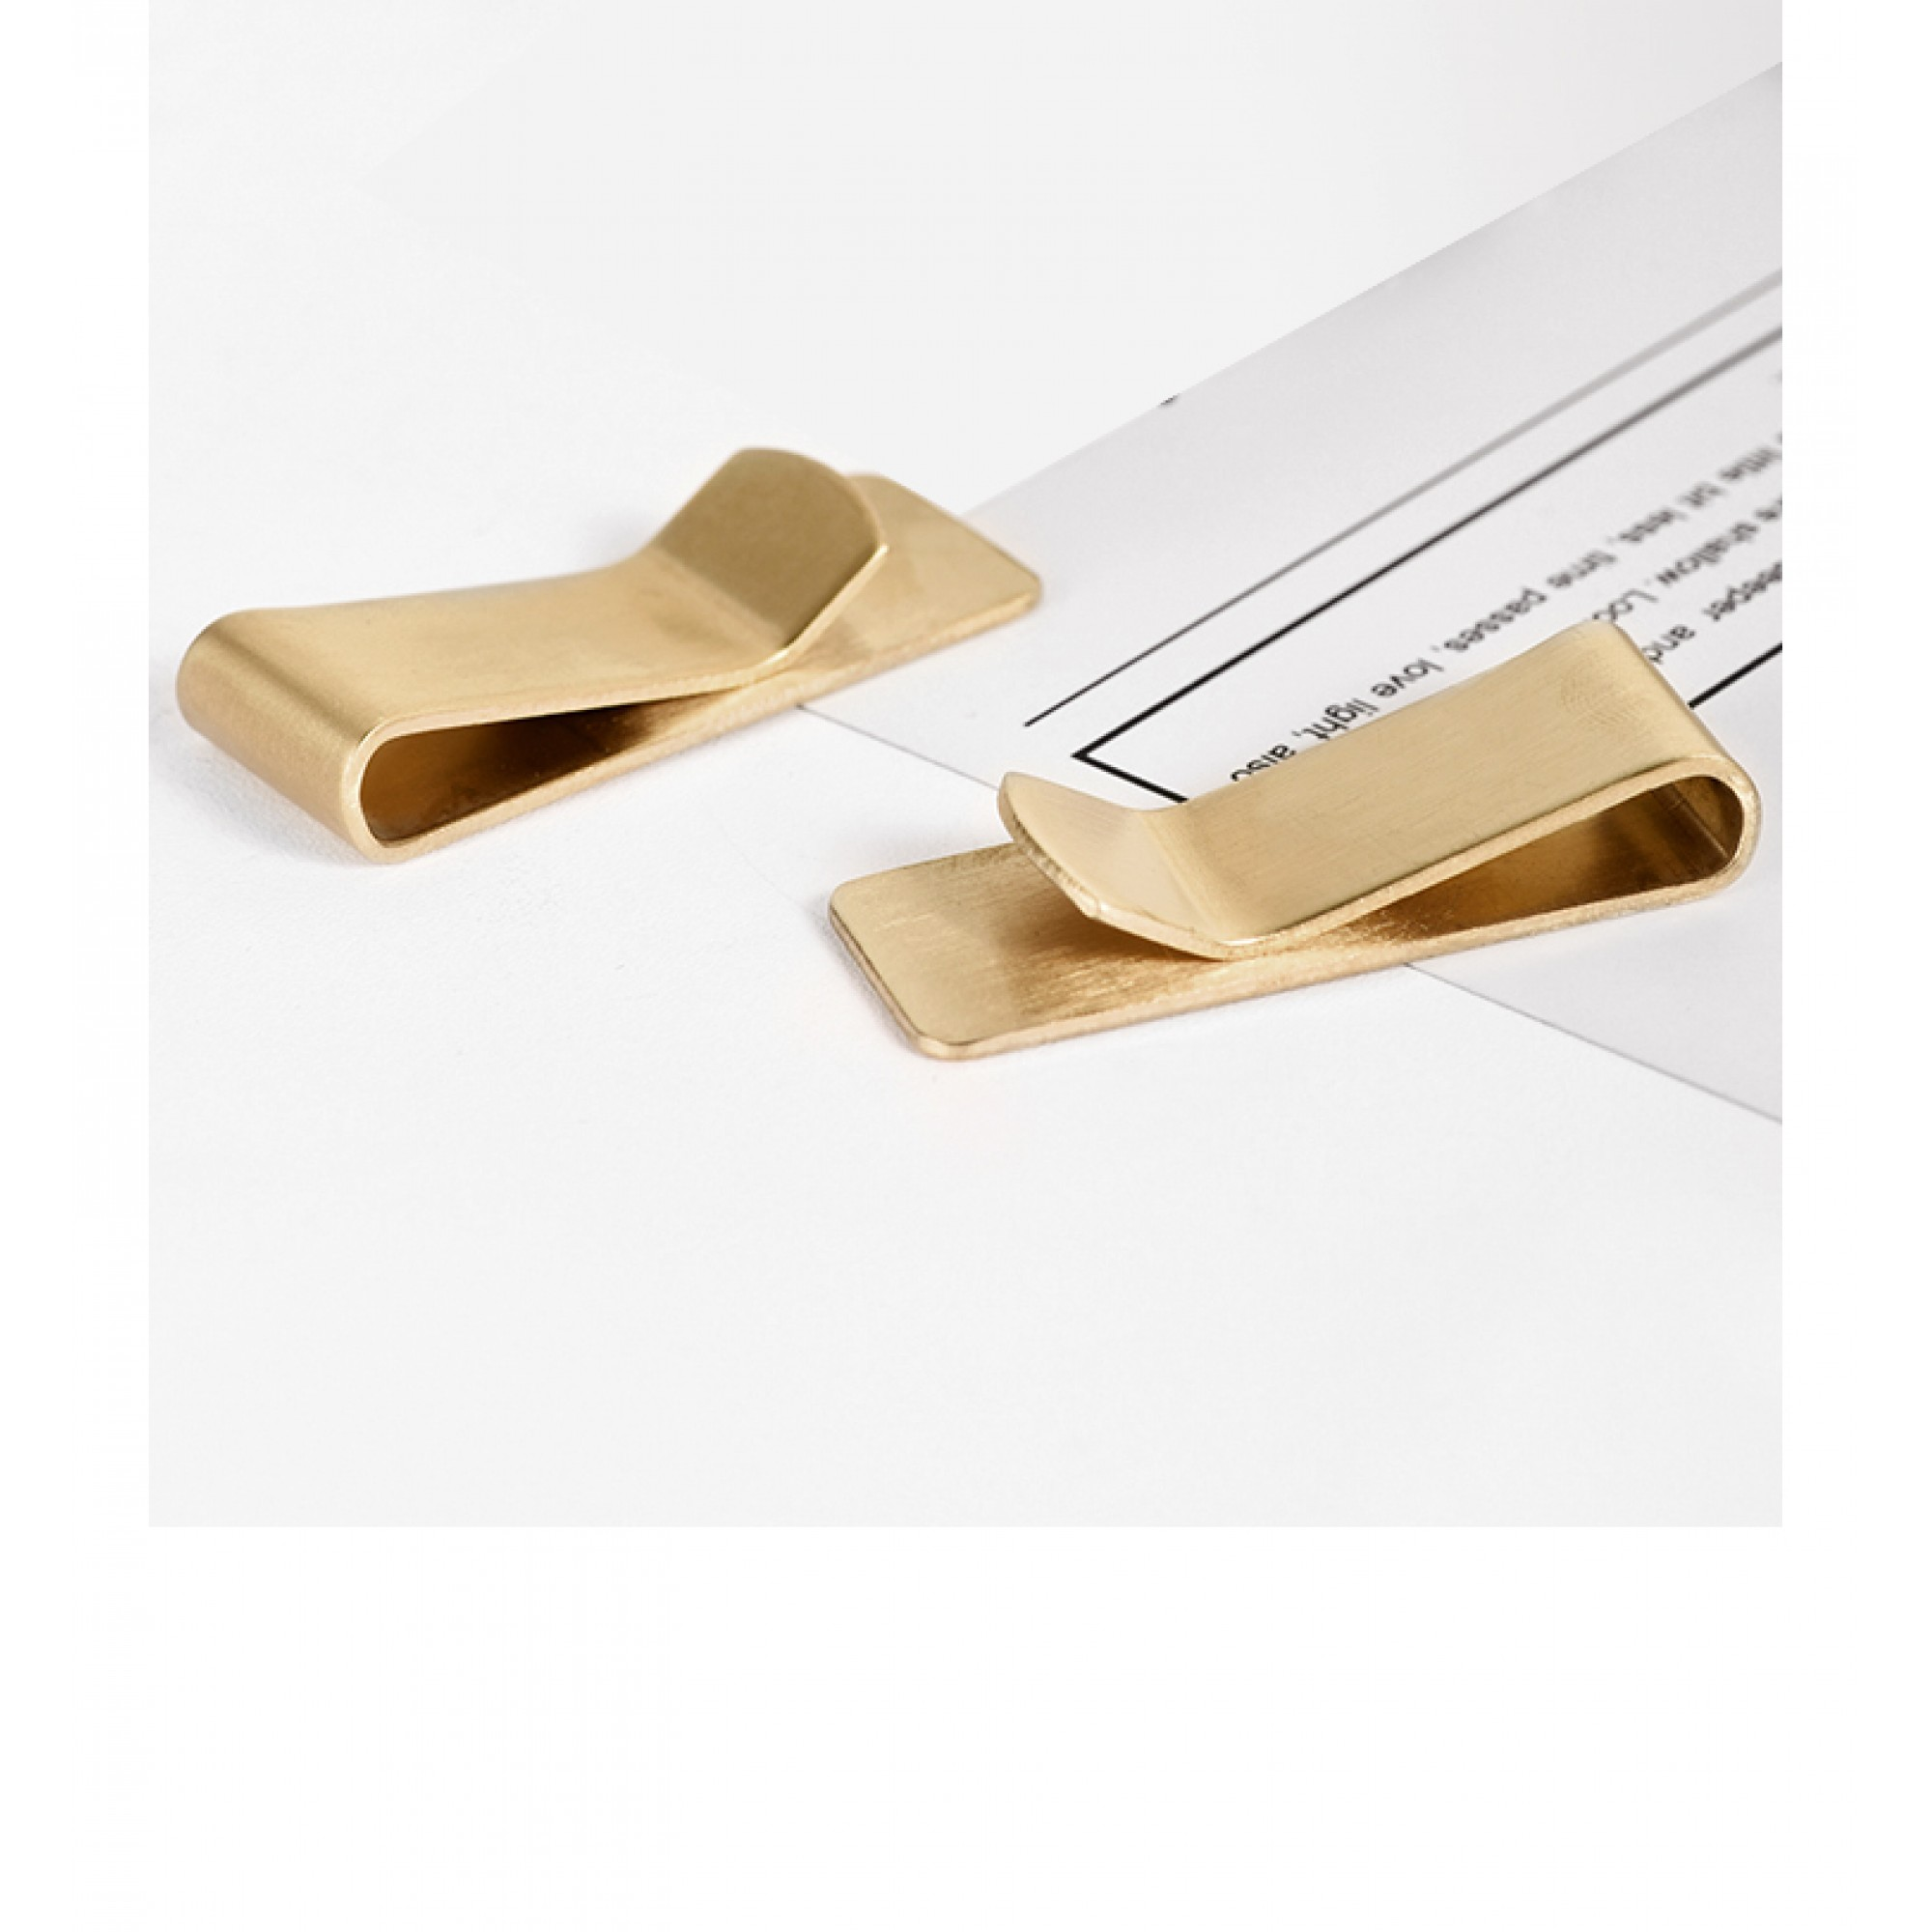 Brass banknote clamp - DAX